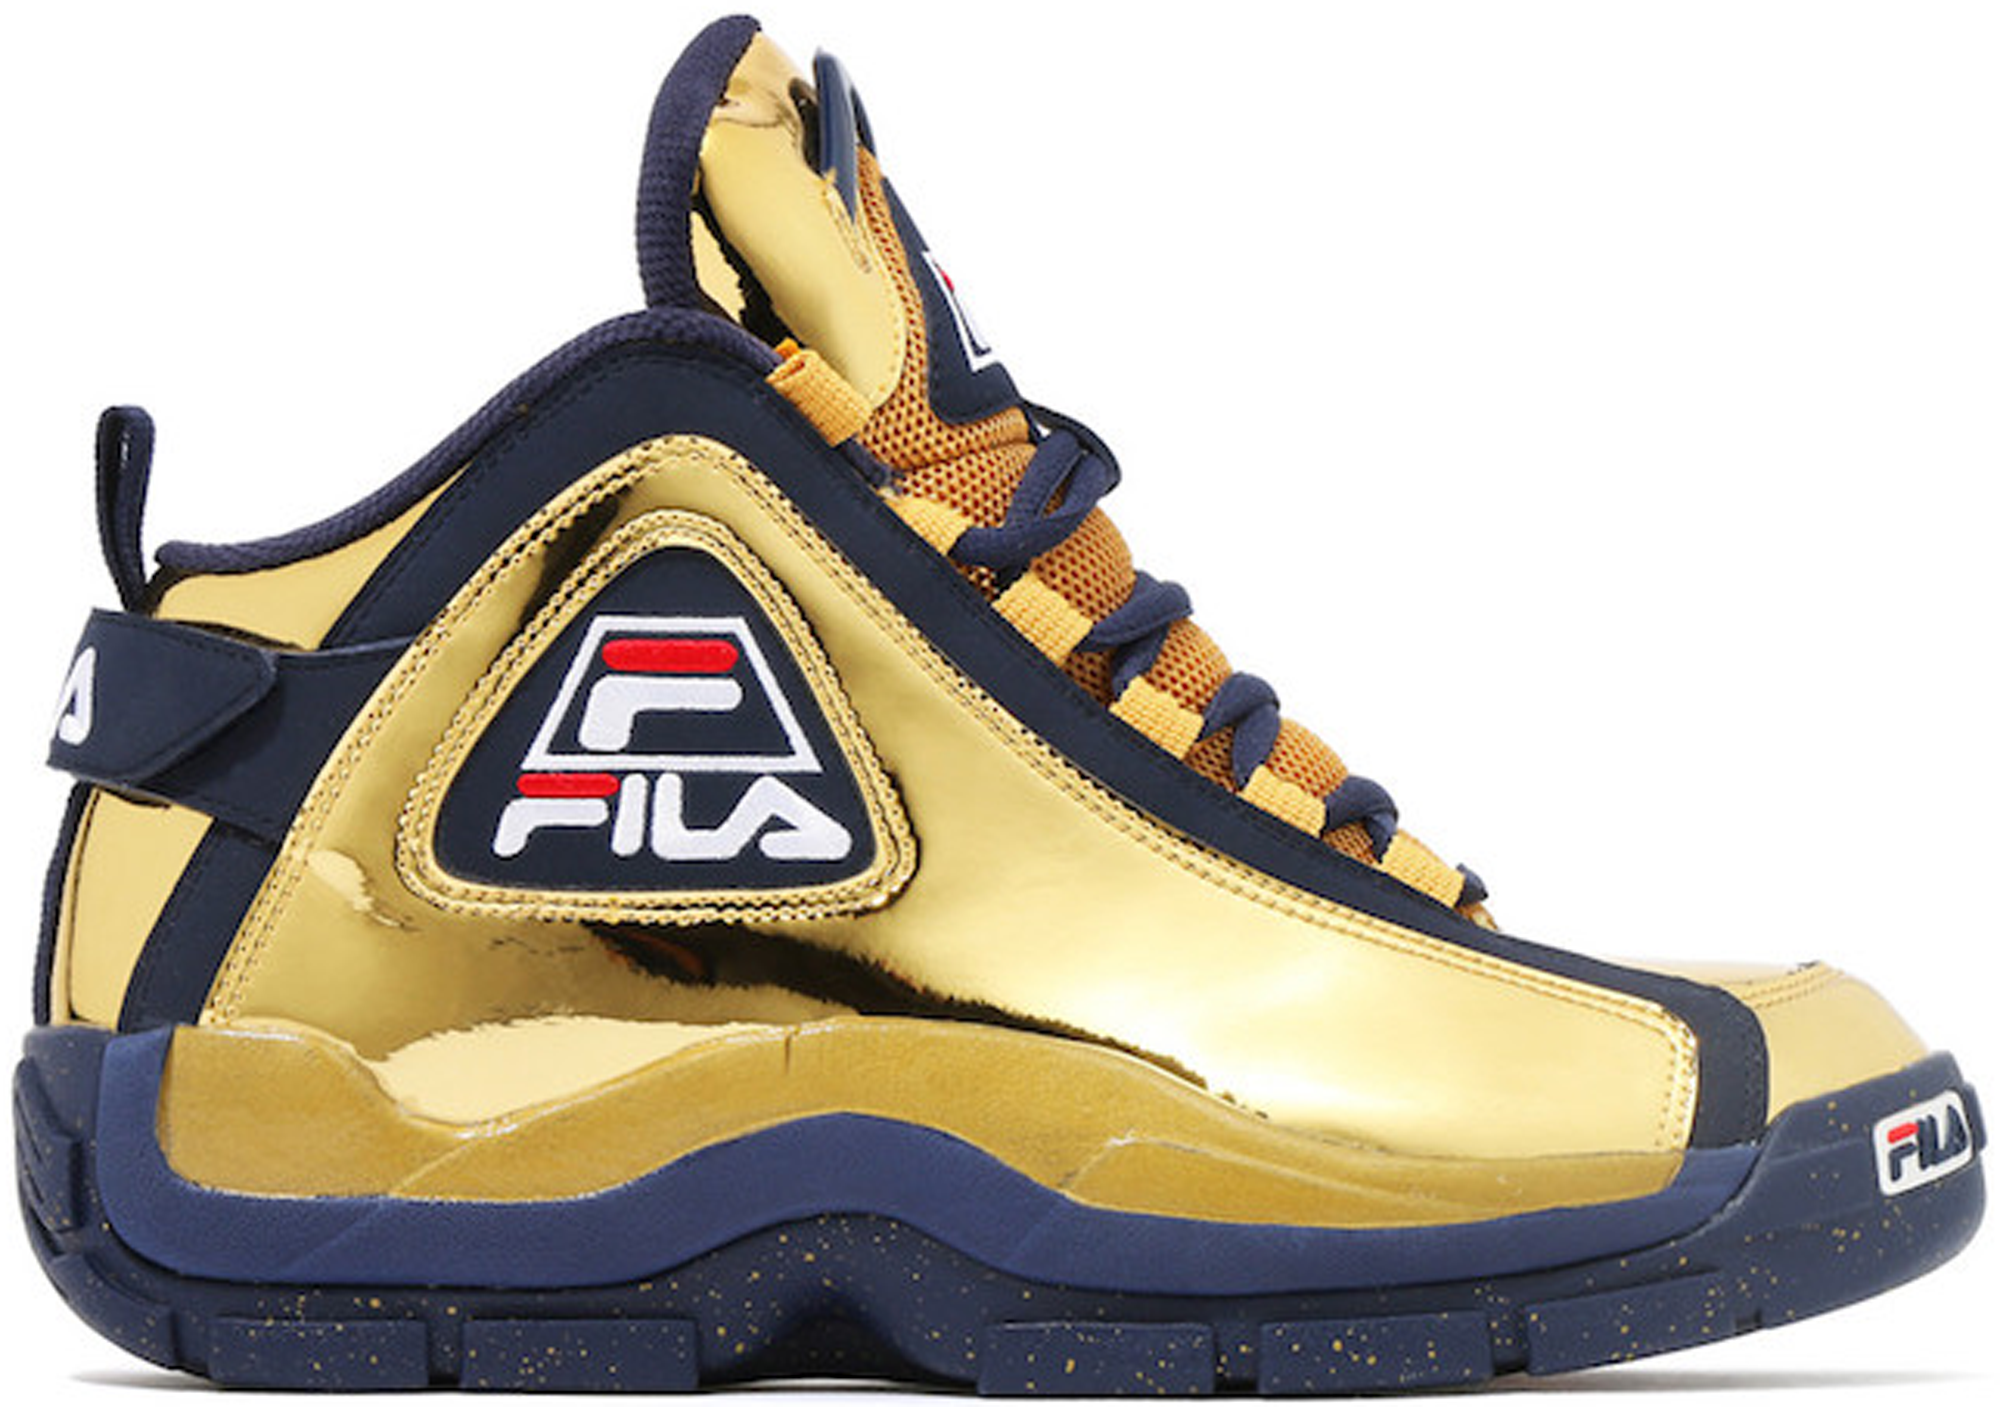 Kinetics x Fila 96 Metallic Gold 2016 Grant Hill 2 Retro